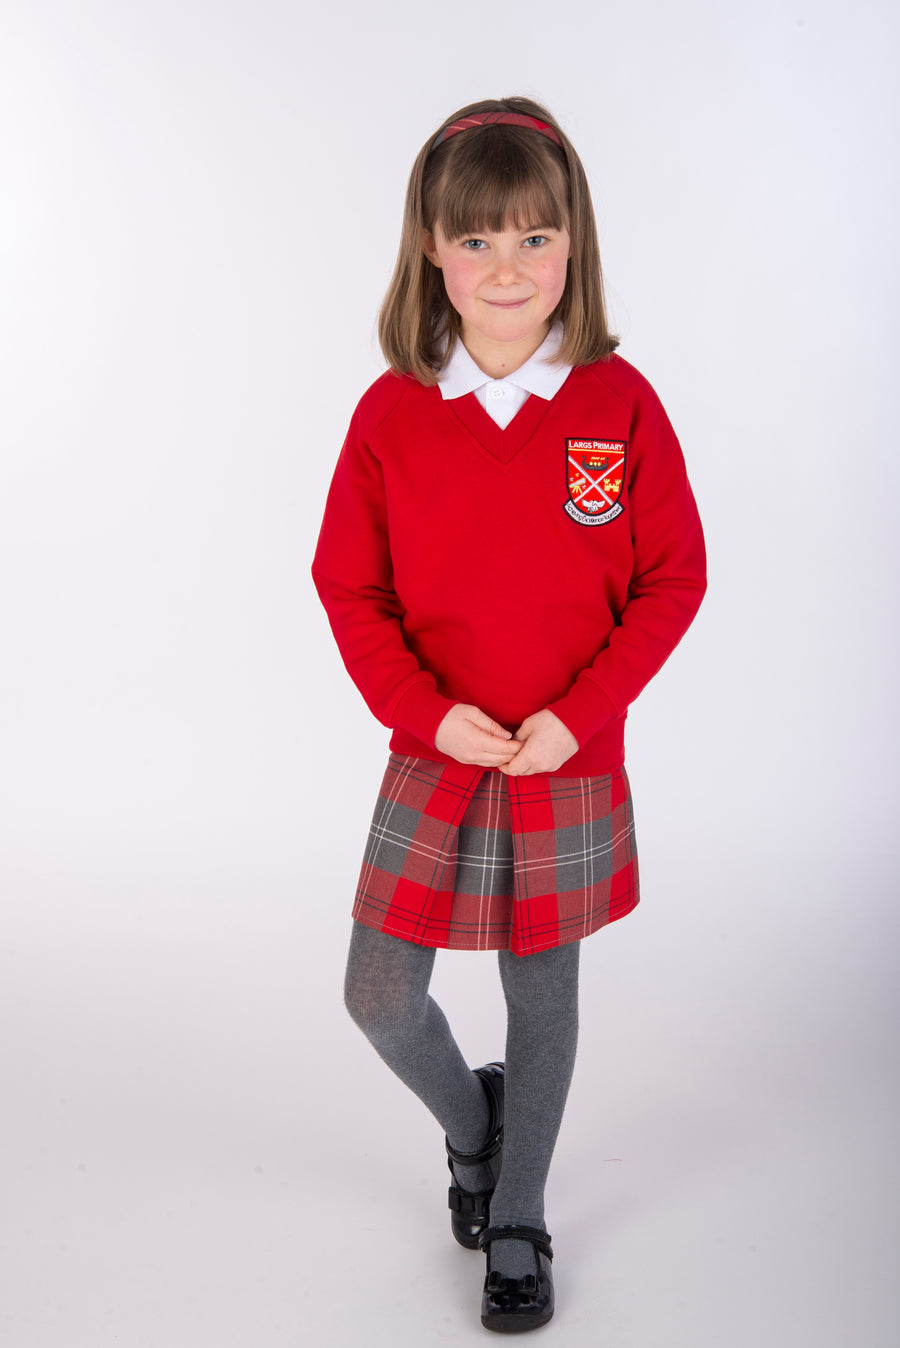 V Neck Jumper for Largs Primary with school badge